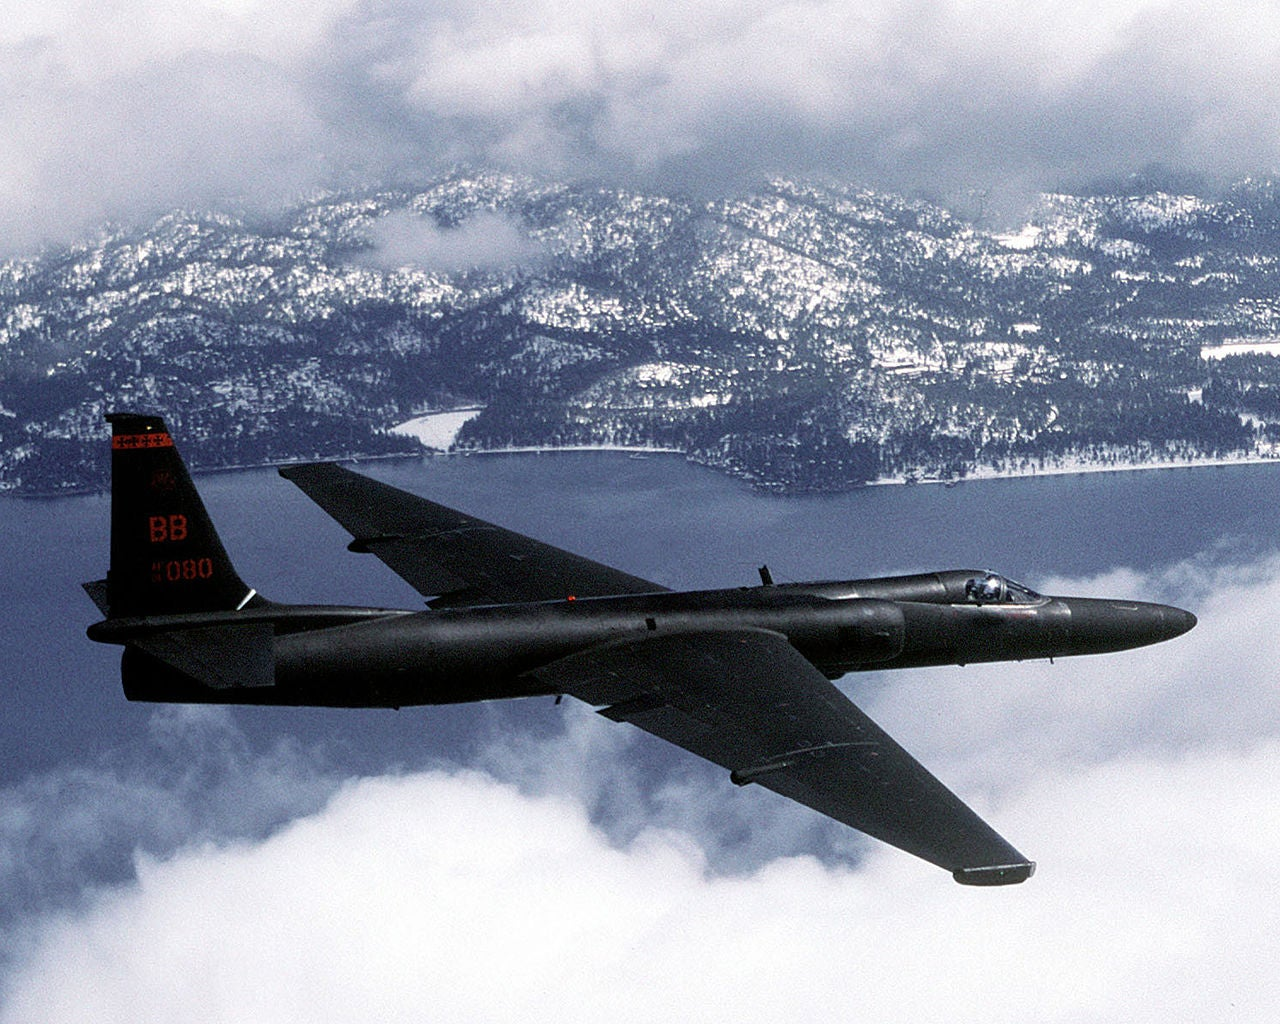 U-2 reconnaissance aircraft in flight